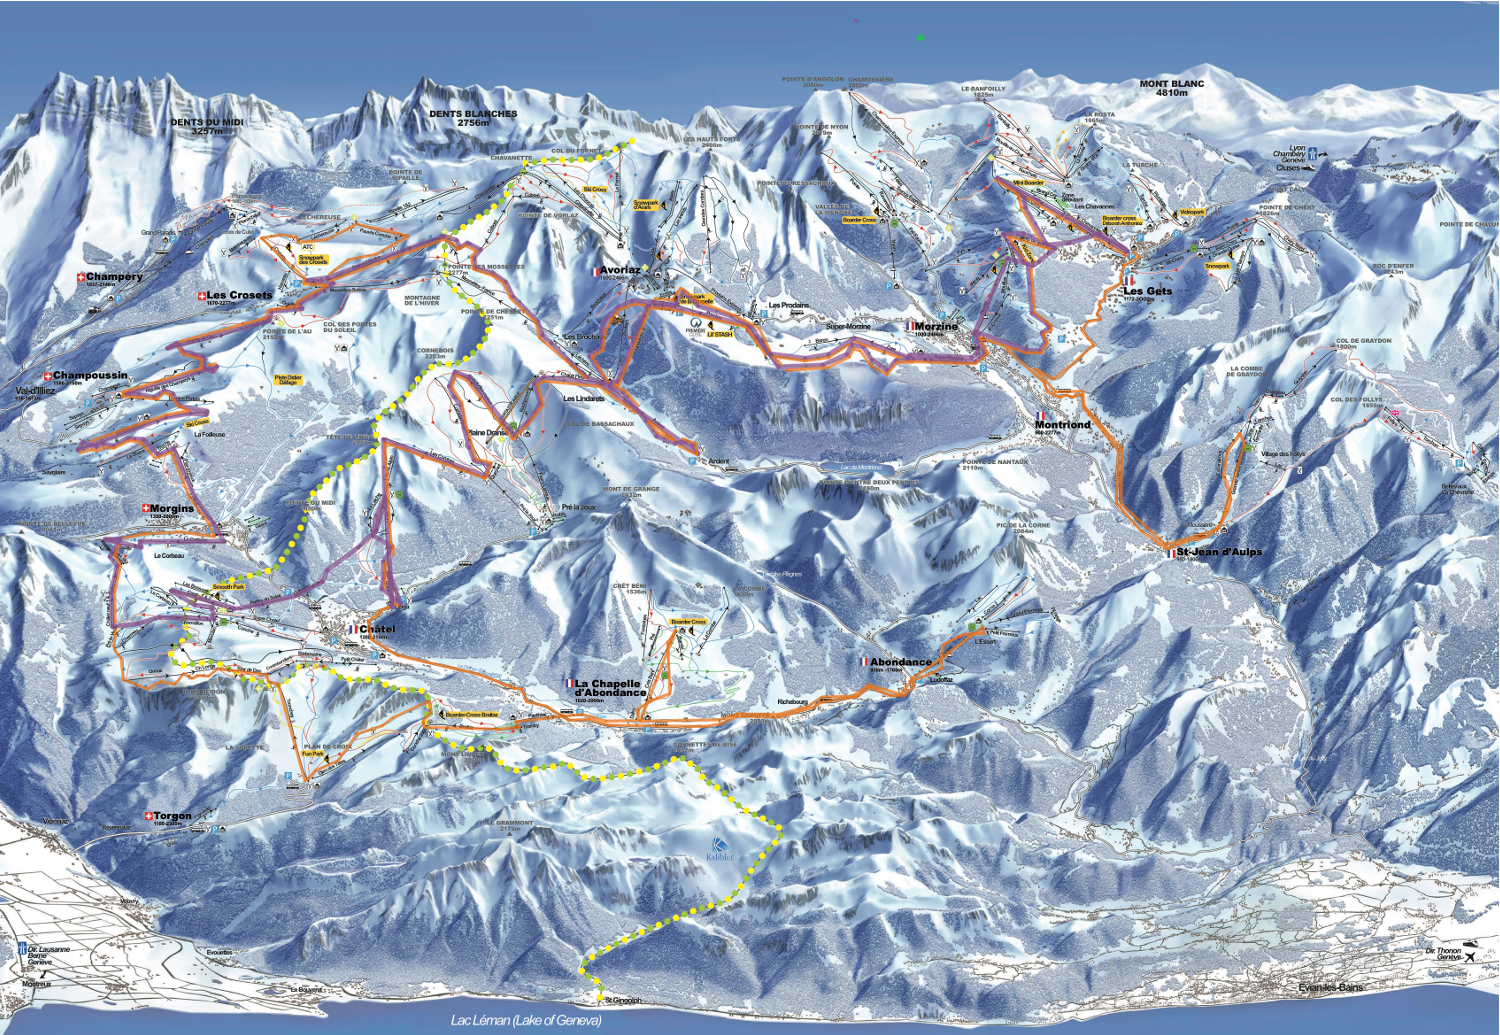 Up Stix Tour of the Portes du Soleil - Our planned route in orange and our actual route in purple.